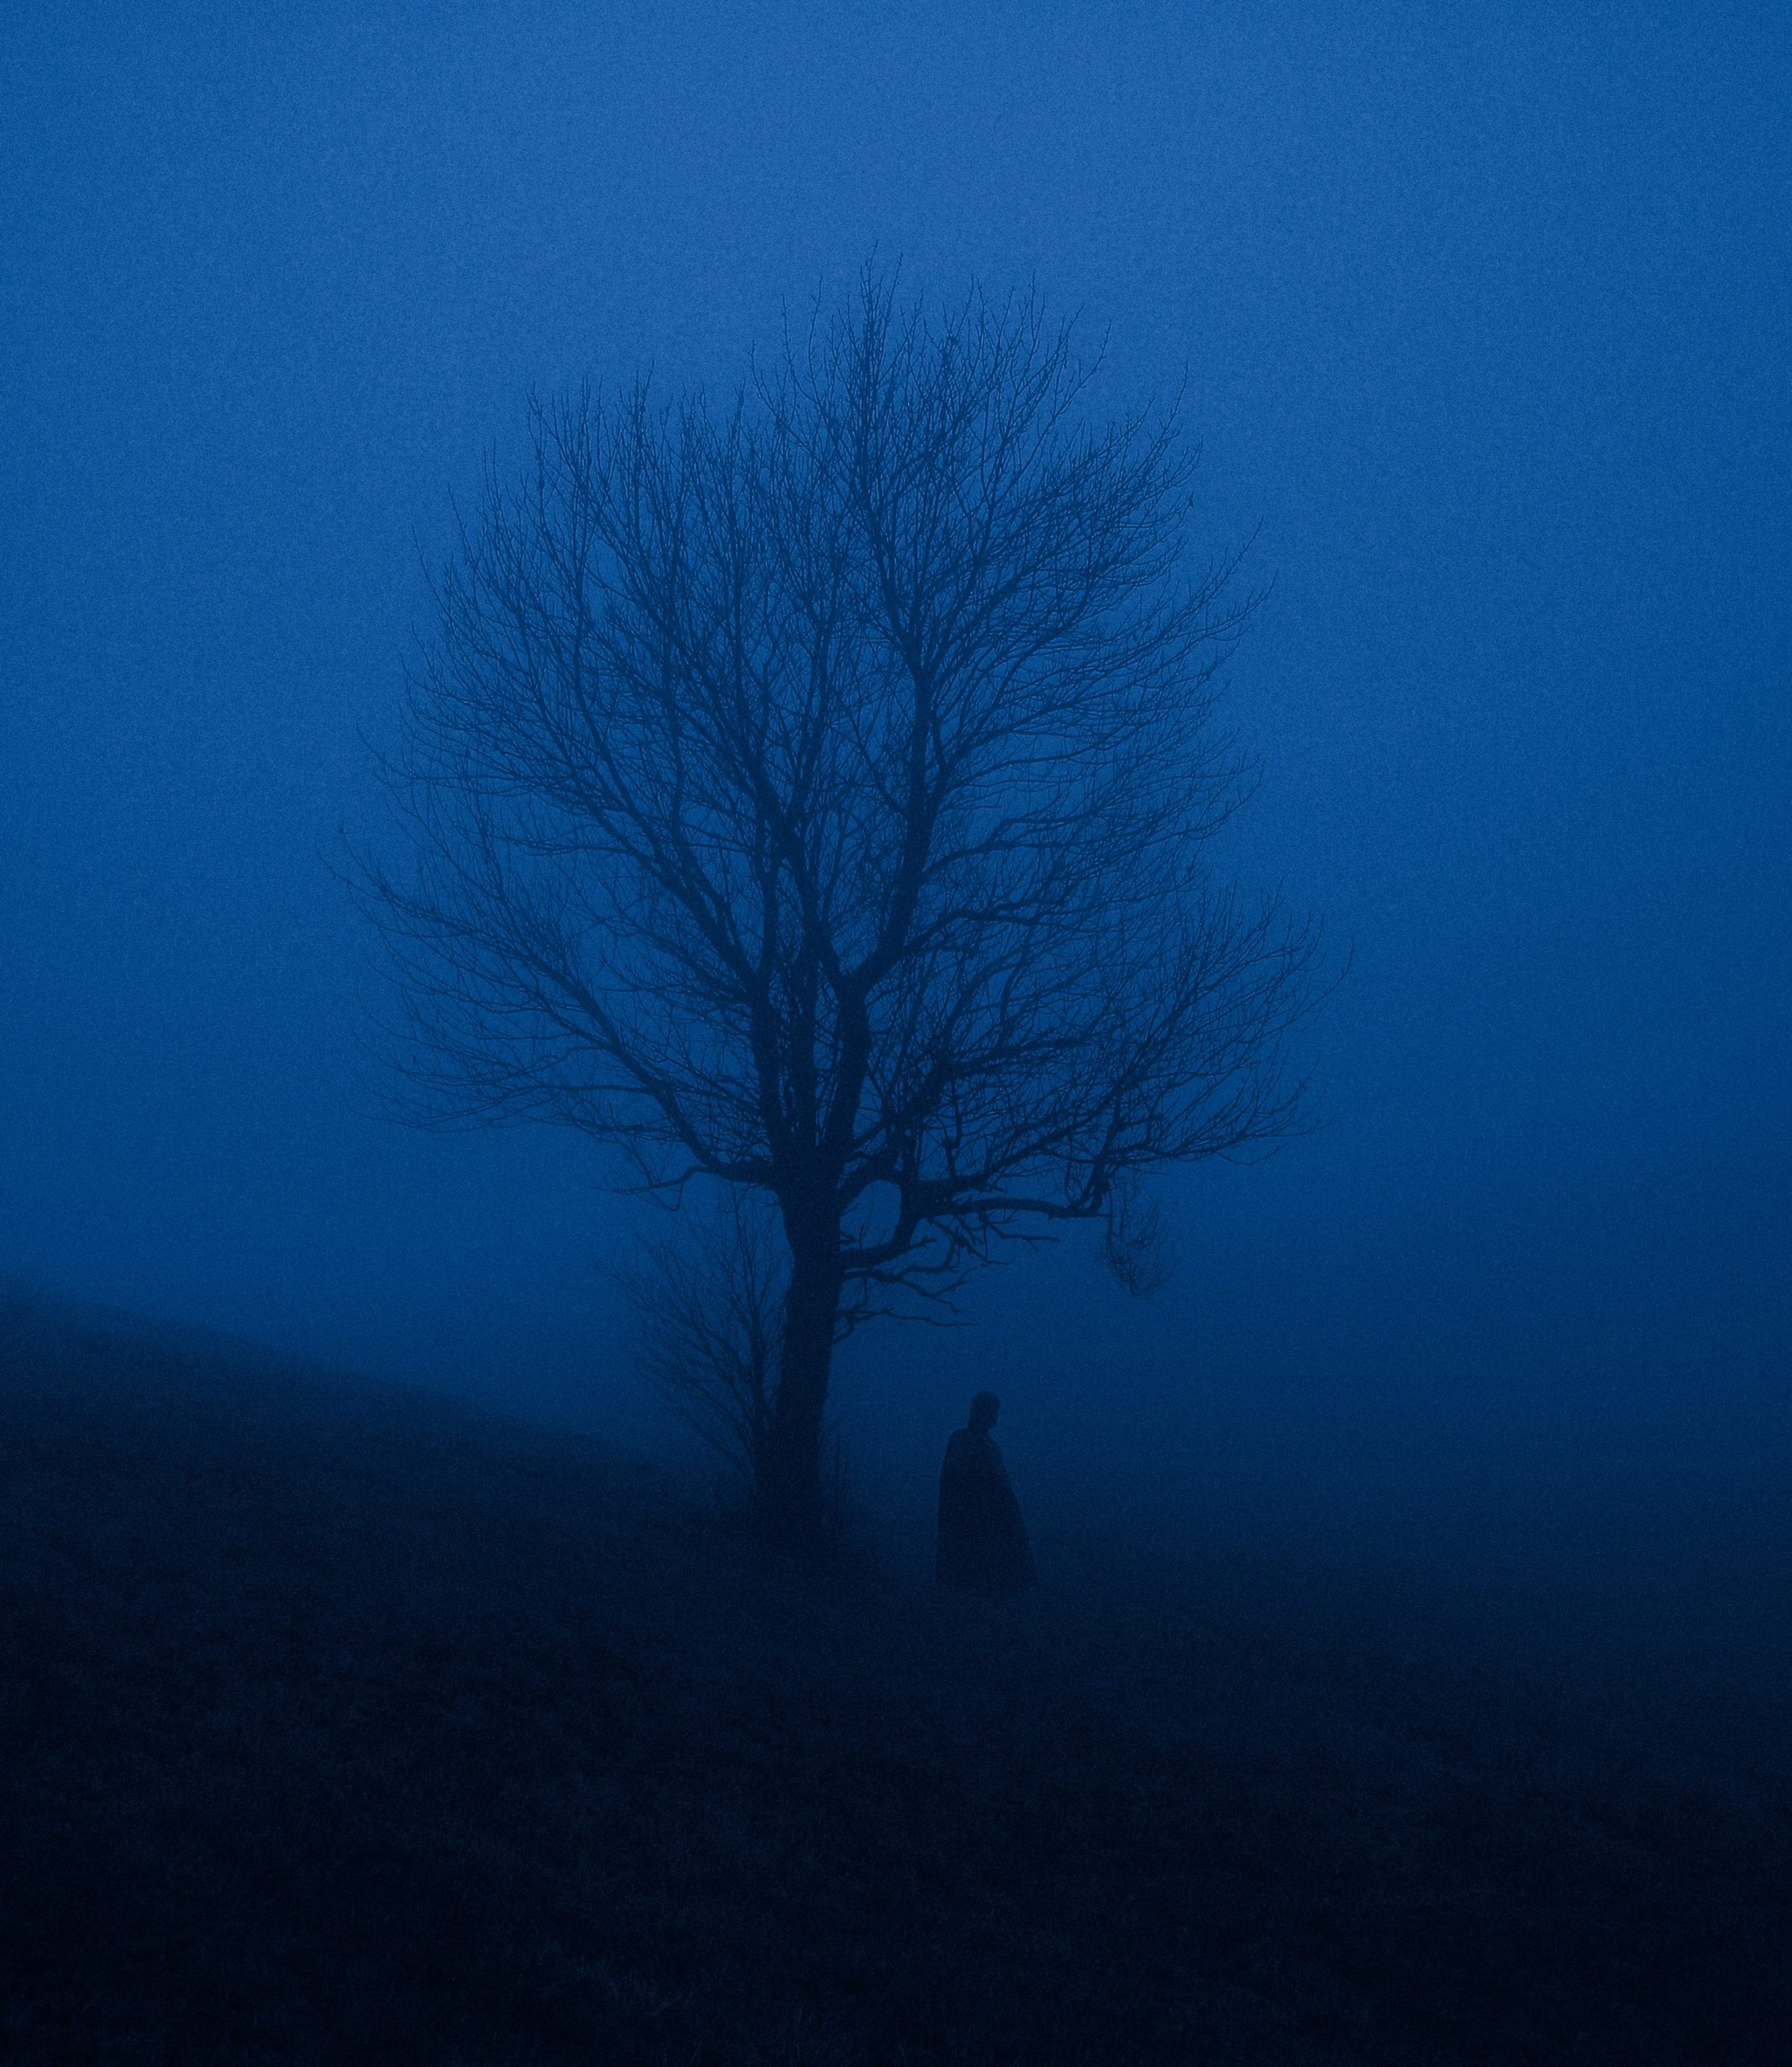 Silhouette of a person under bare tree